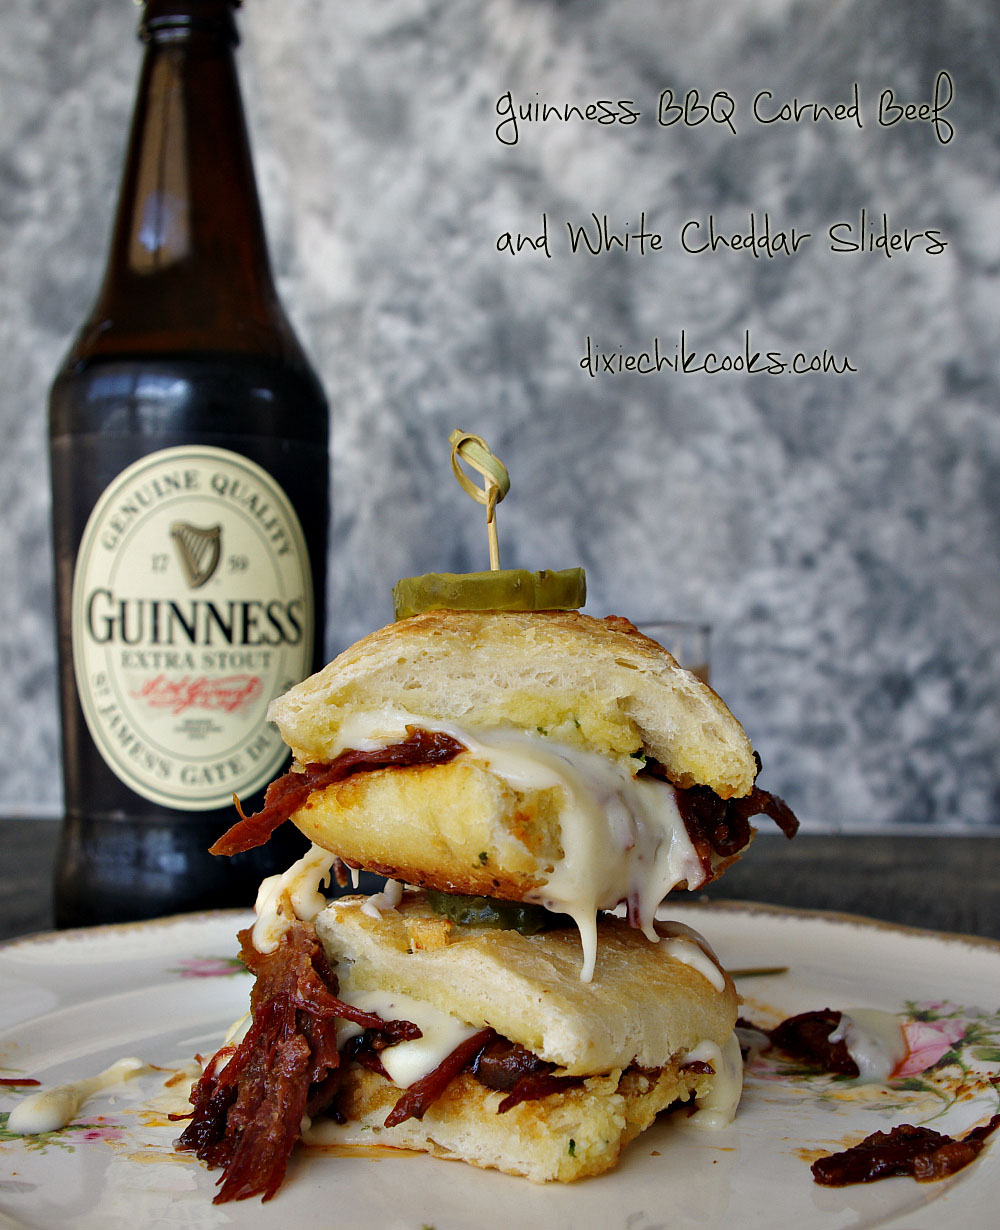 Guinness BBQ Corned Beef and White Cheddar Sliders   Dixie Chik Cooks